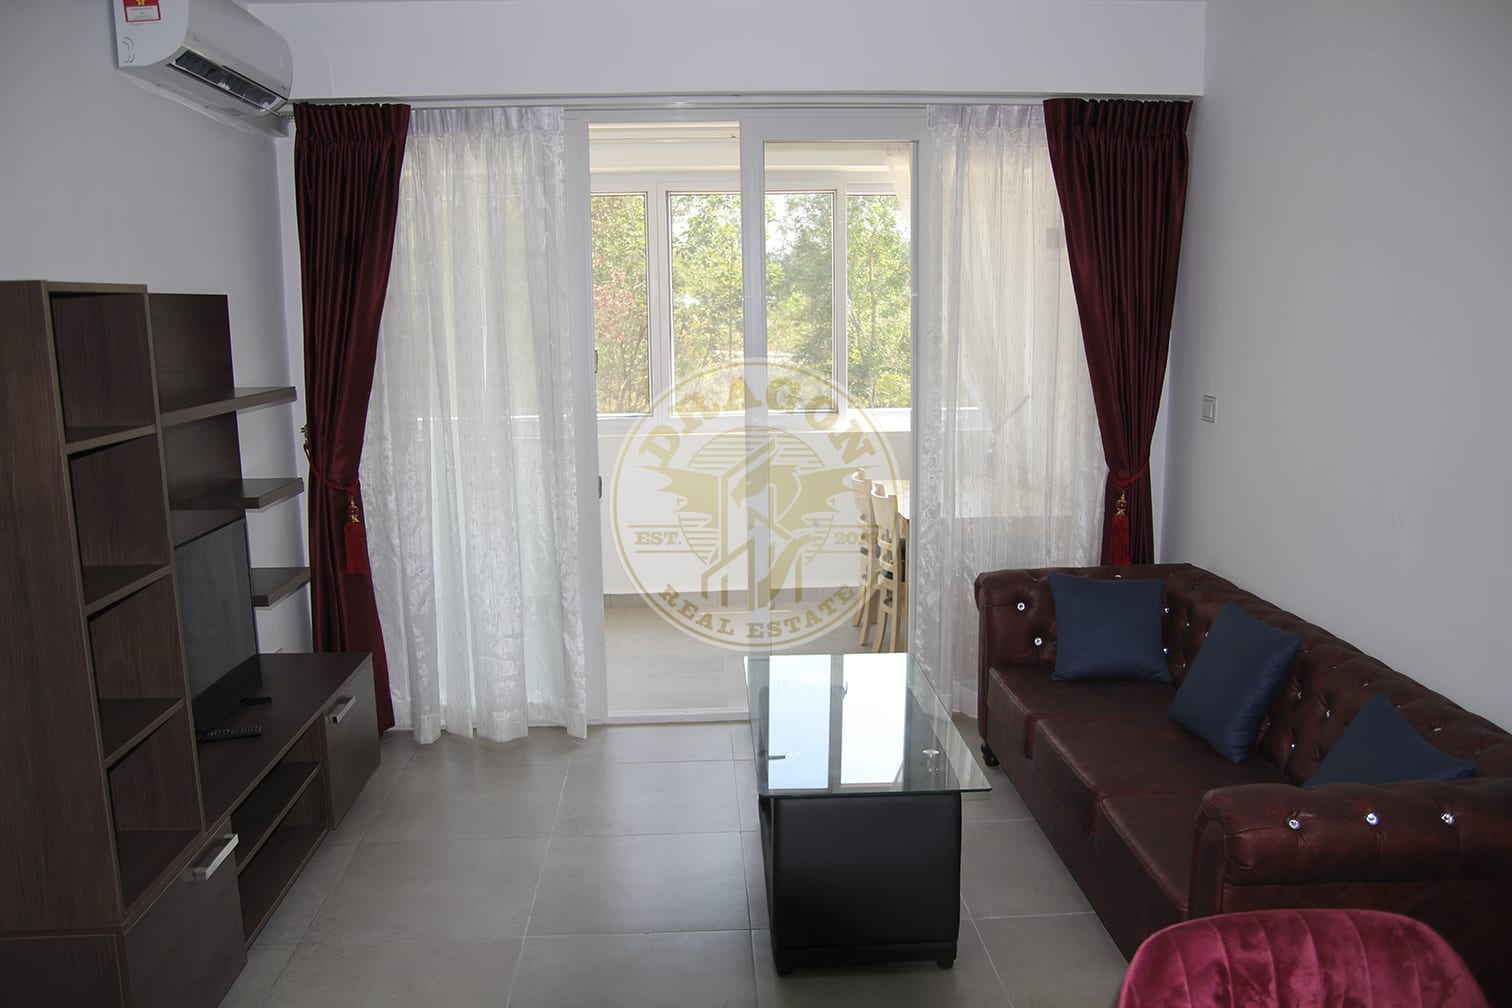 Heartful Apartment for Rent. Real Estate in Sihanoukville